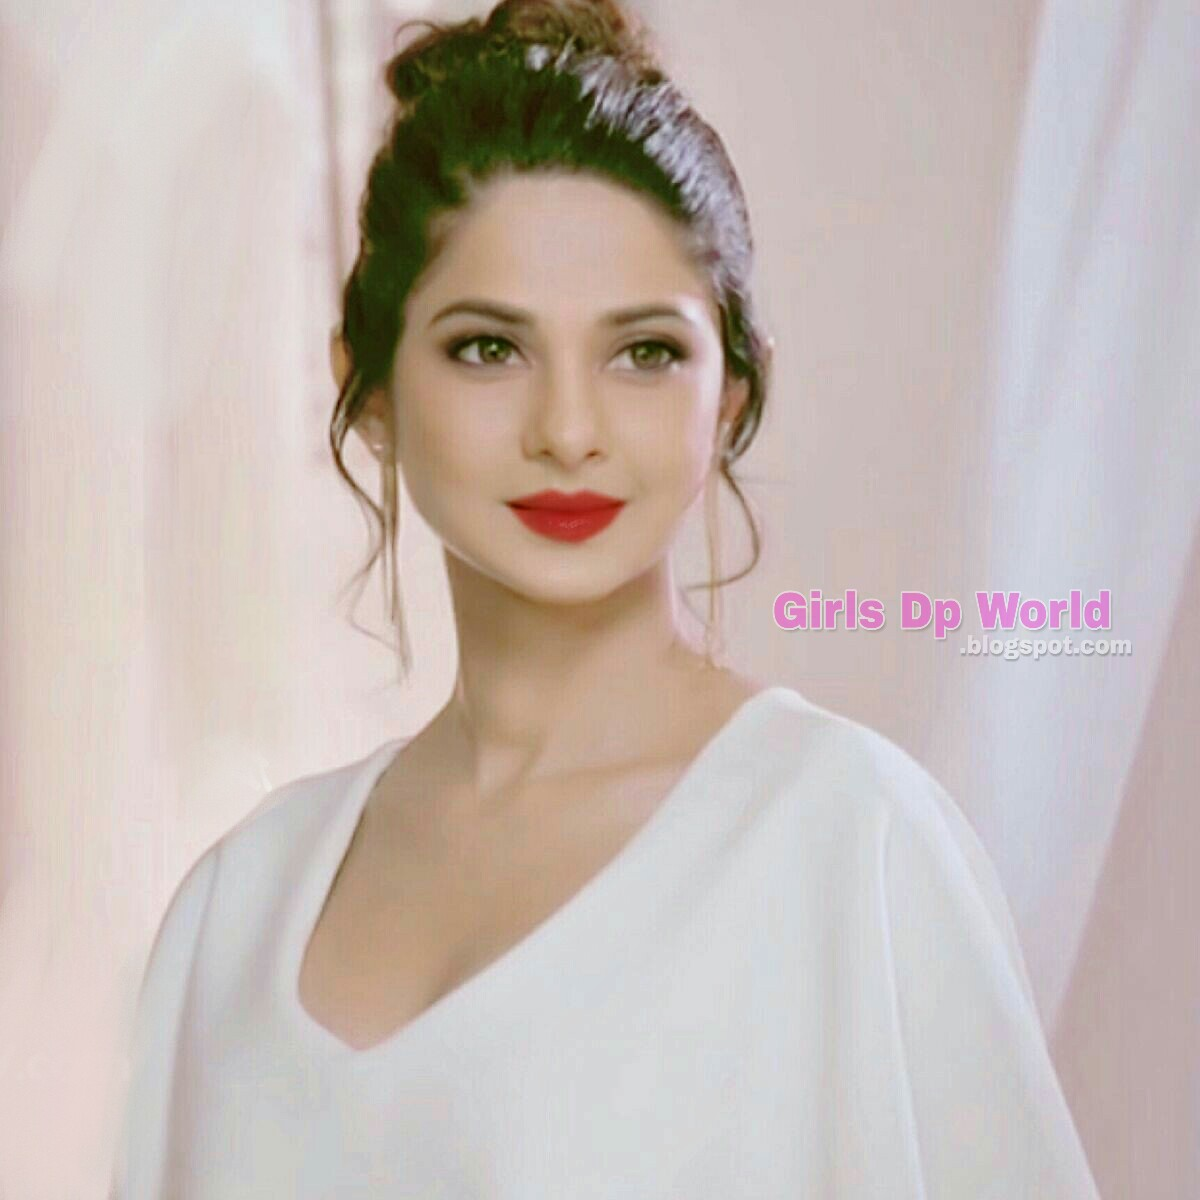 Cute Chat Wallpaper For Whatsapp Best Jennifer Winget Images For Whatsapp Amp Facebook Dp